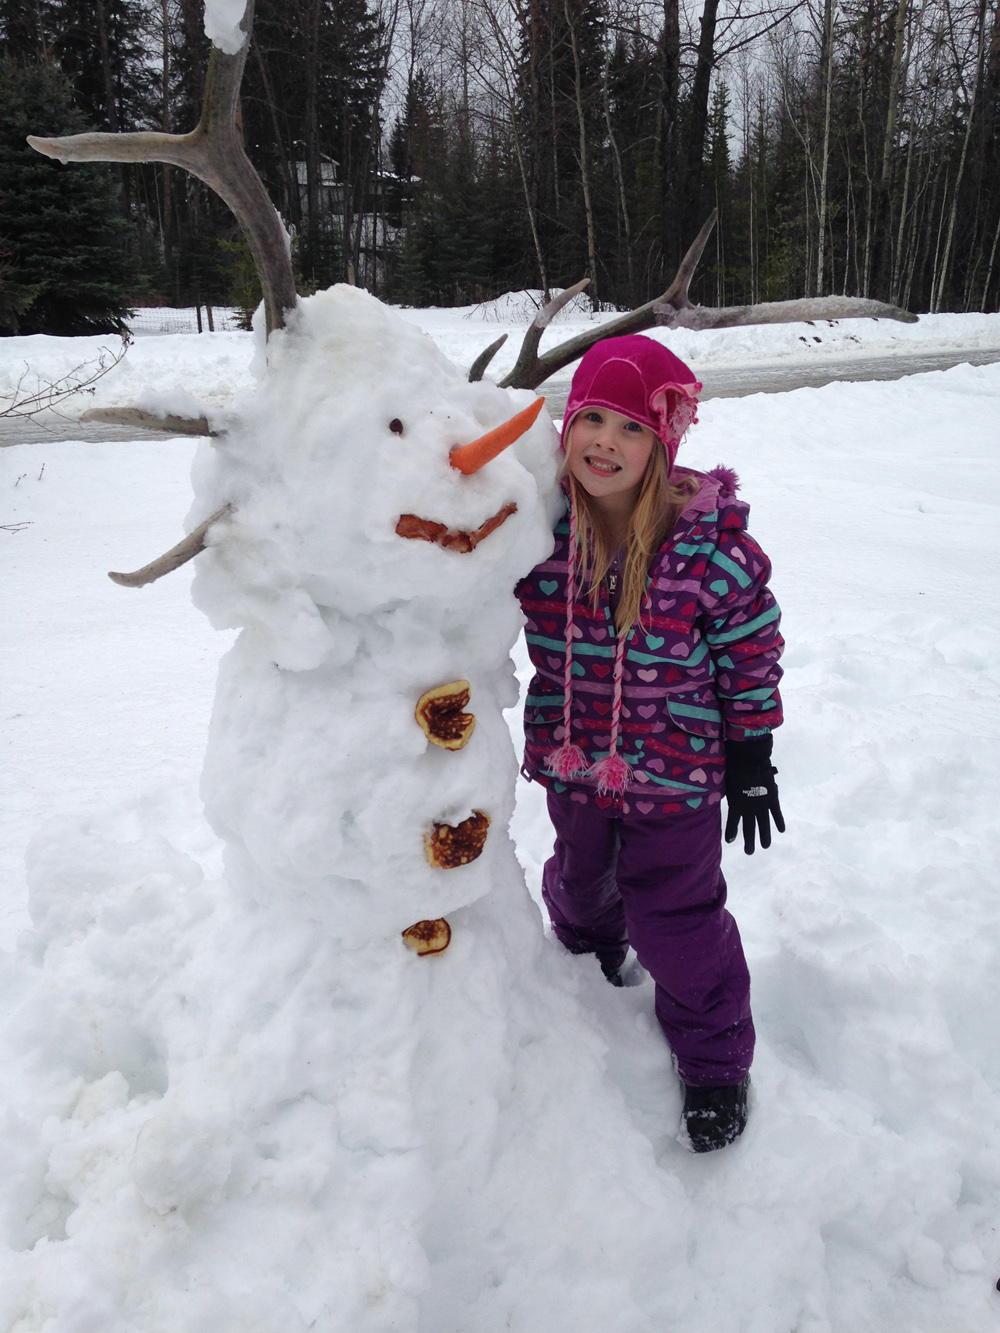 Marijke Suter with the snowman she made visiting her Auntie  Patsy in Hixon. Marijke is five years old and worked very hard to build this unique snowman.  He has beautiful horns and leftover breakfast for his mouth and buttons, and a carrot nose. Auntie Patsy and Uncle Larry are very proud to show off this snowman in their yard. It is her entry in the Snow Daze Snowman Building contest, which is part of Mardi Gras.